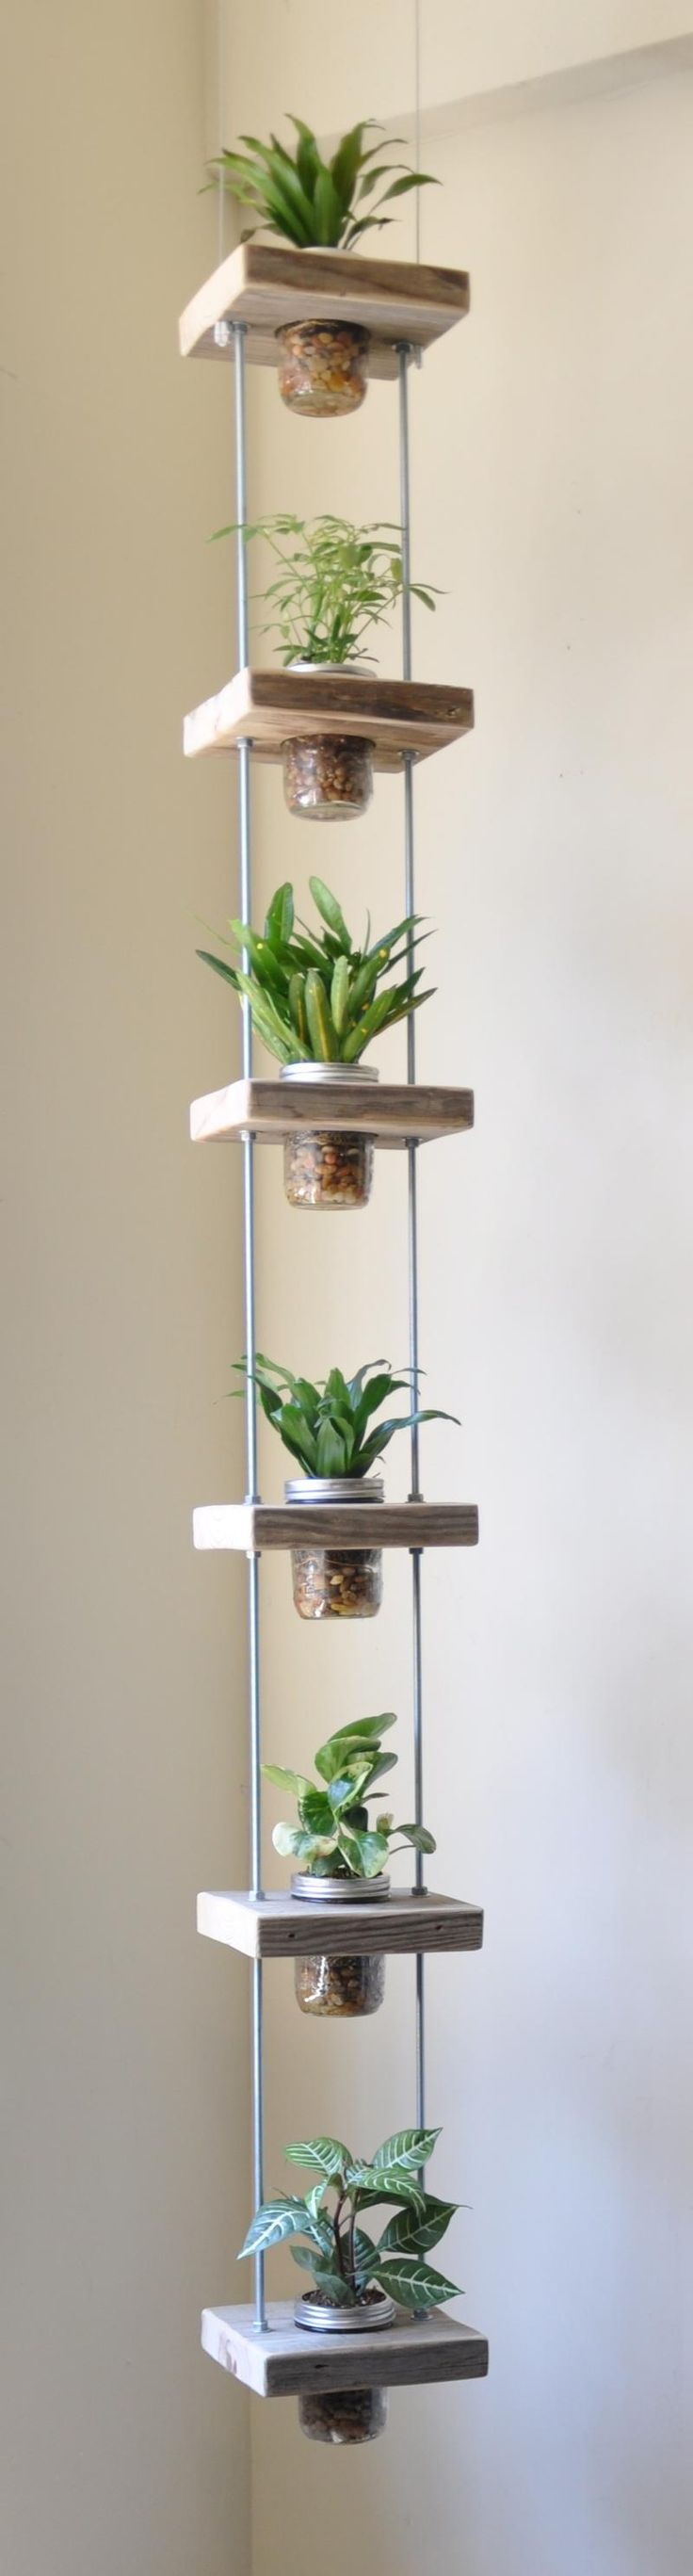 DIY Vertical Garden!